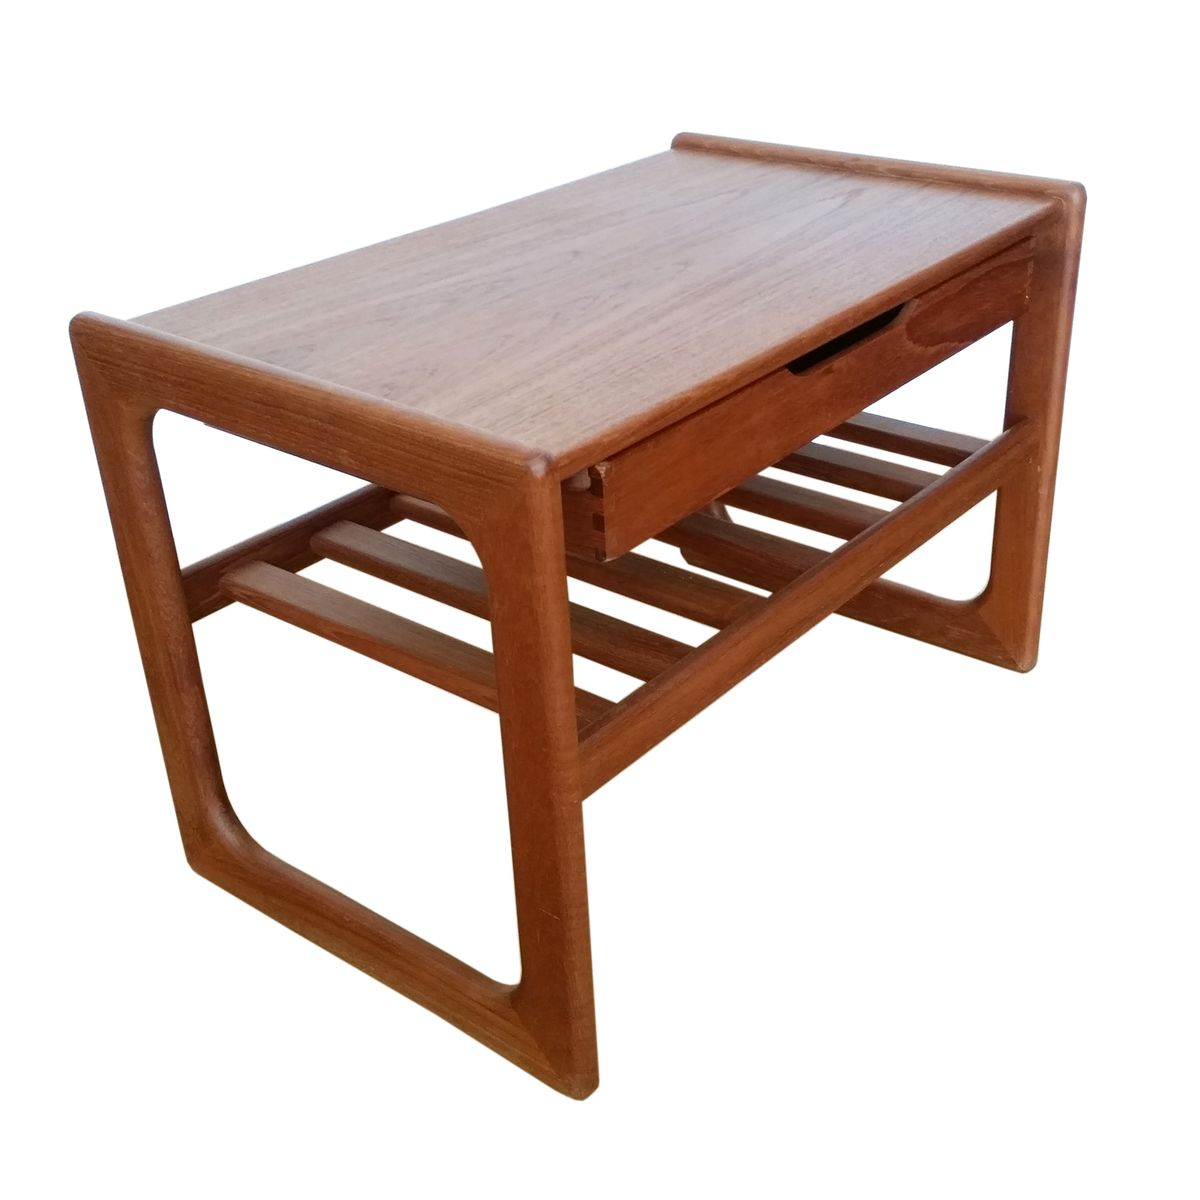 Danish Teak Salin Coffee Table 1960s For Sale At Pamono